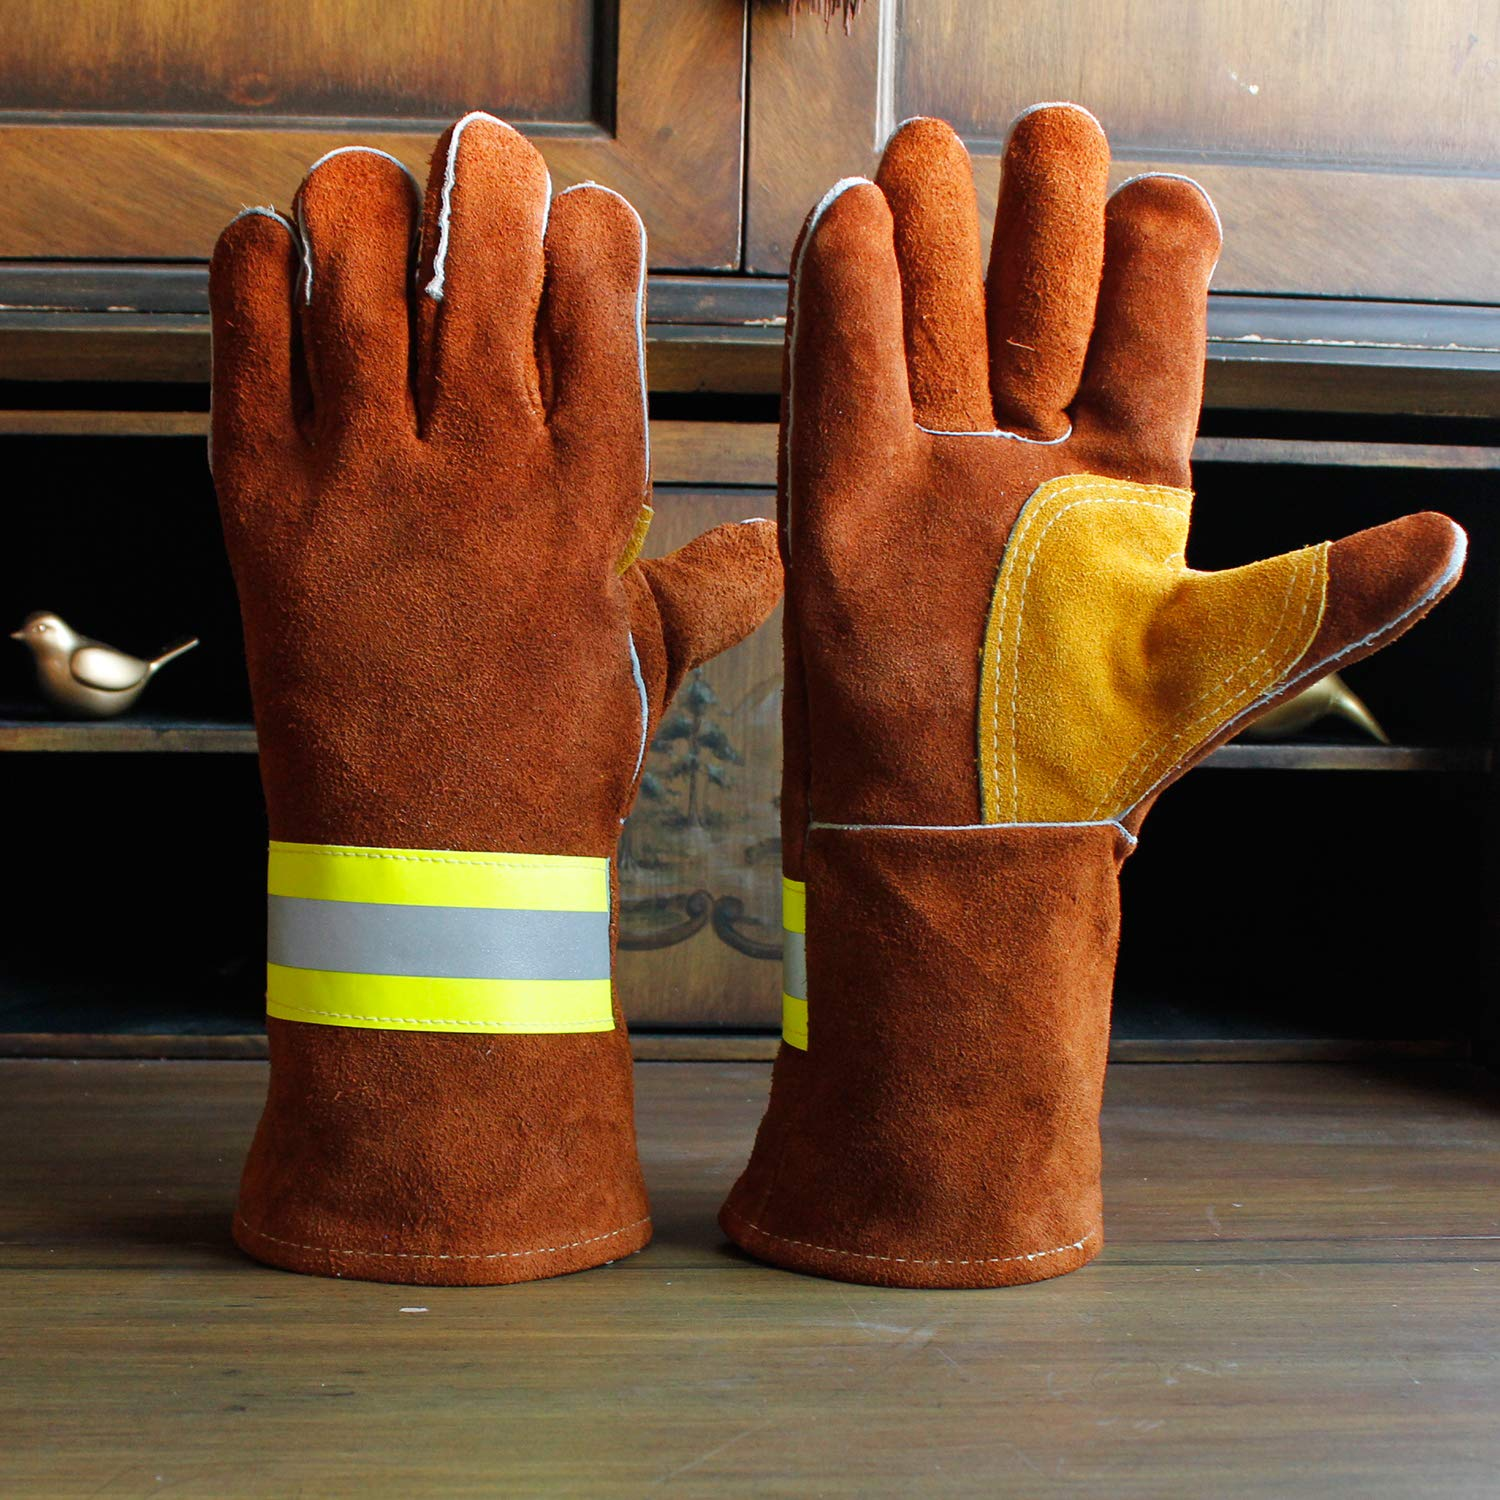 Silver Chuan Zhi High Visibility Welding Gloves With Reflective Strip Heat and Fire Resistant Reflective Aluminum Cowhide Safety Gloves 14 XL with Kevlar Stitching